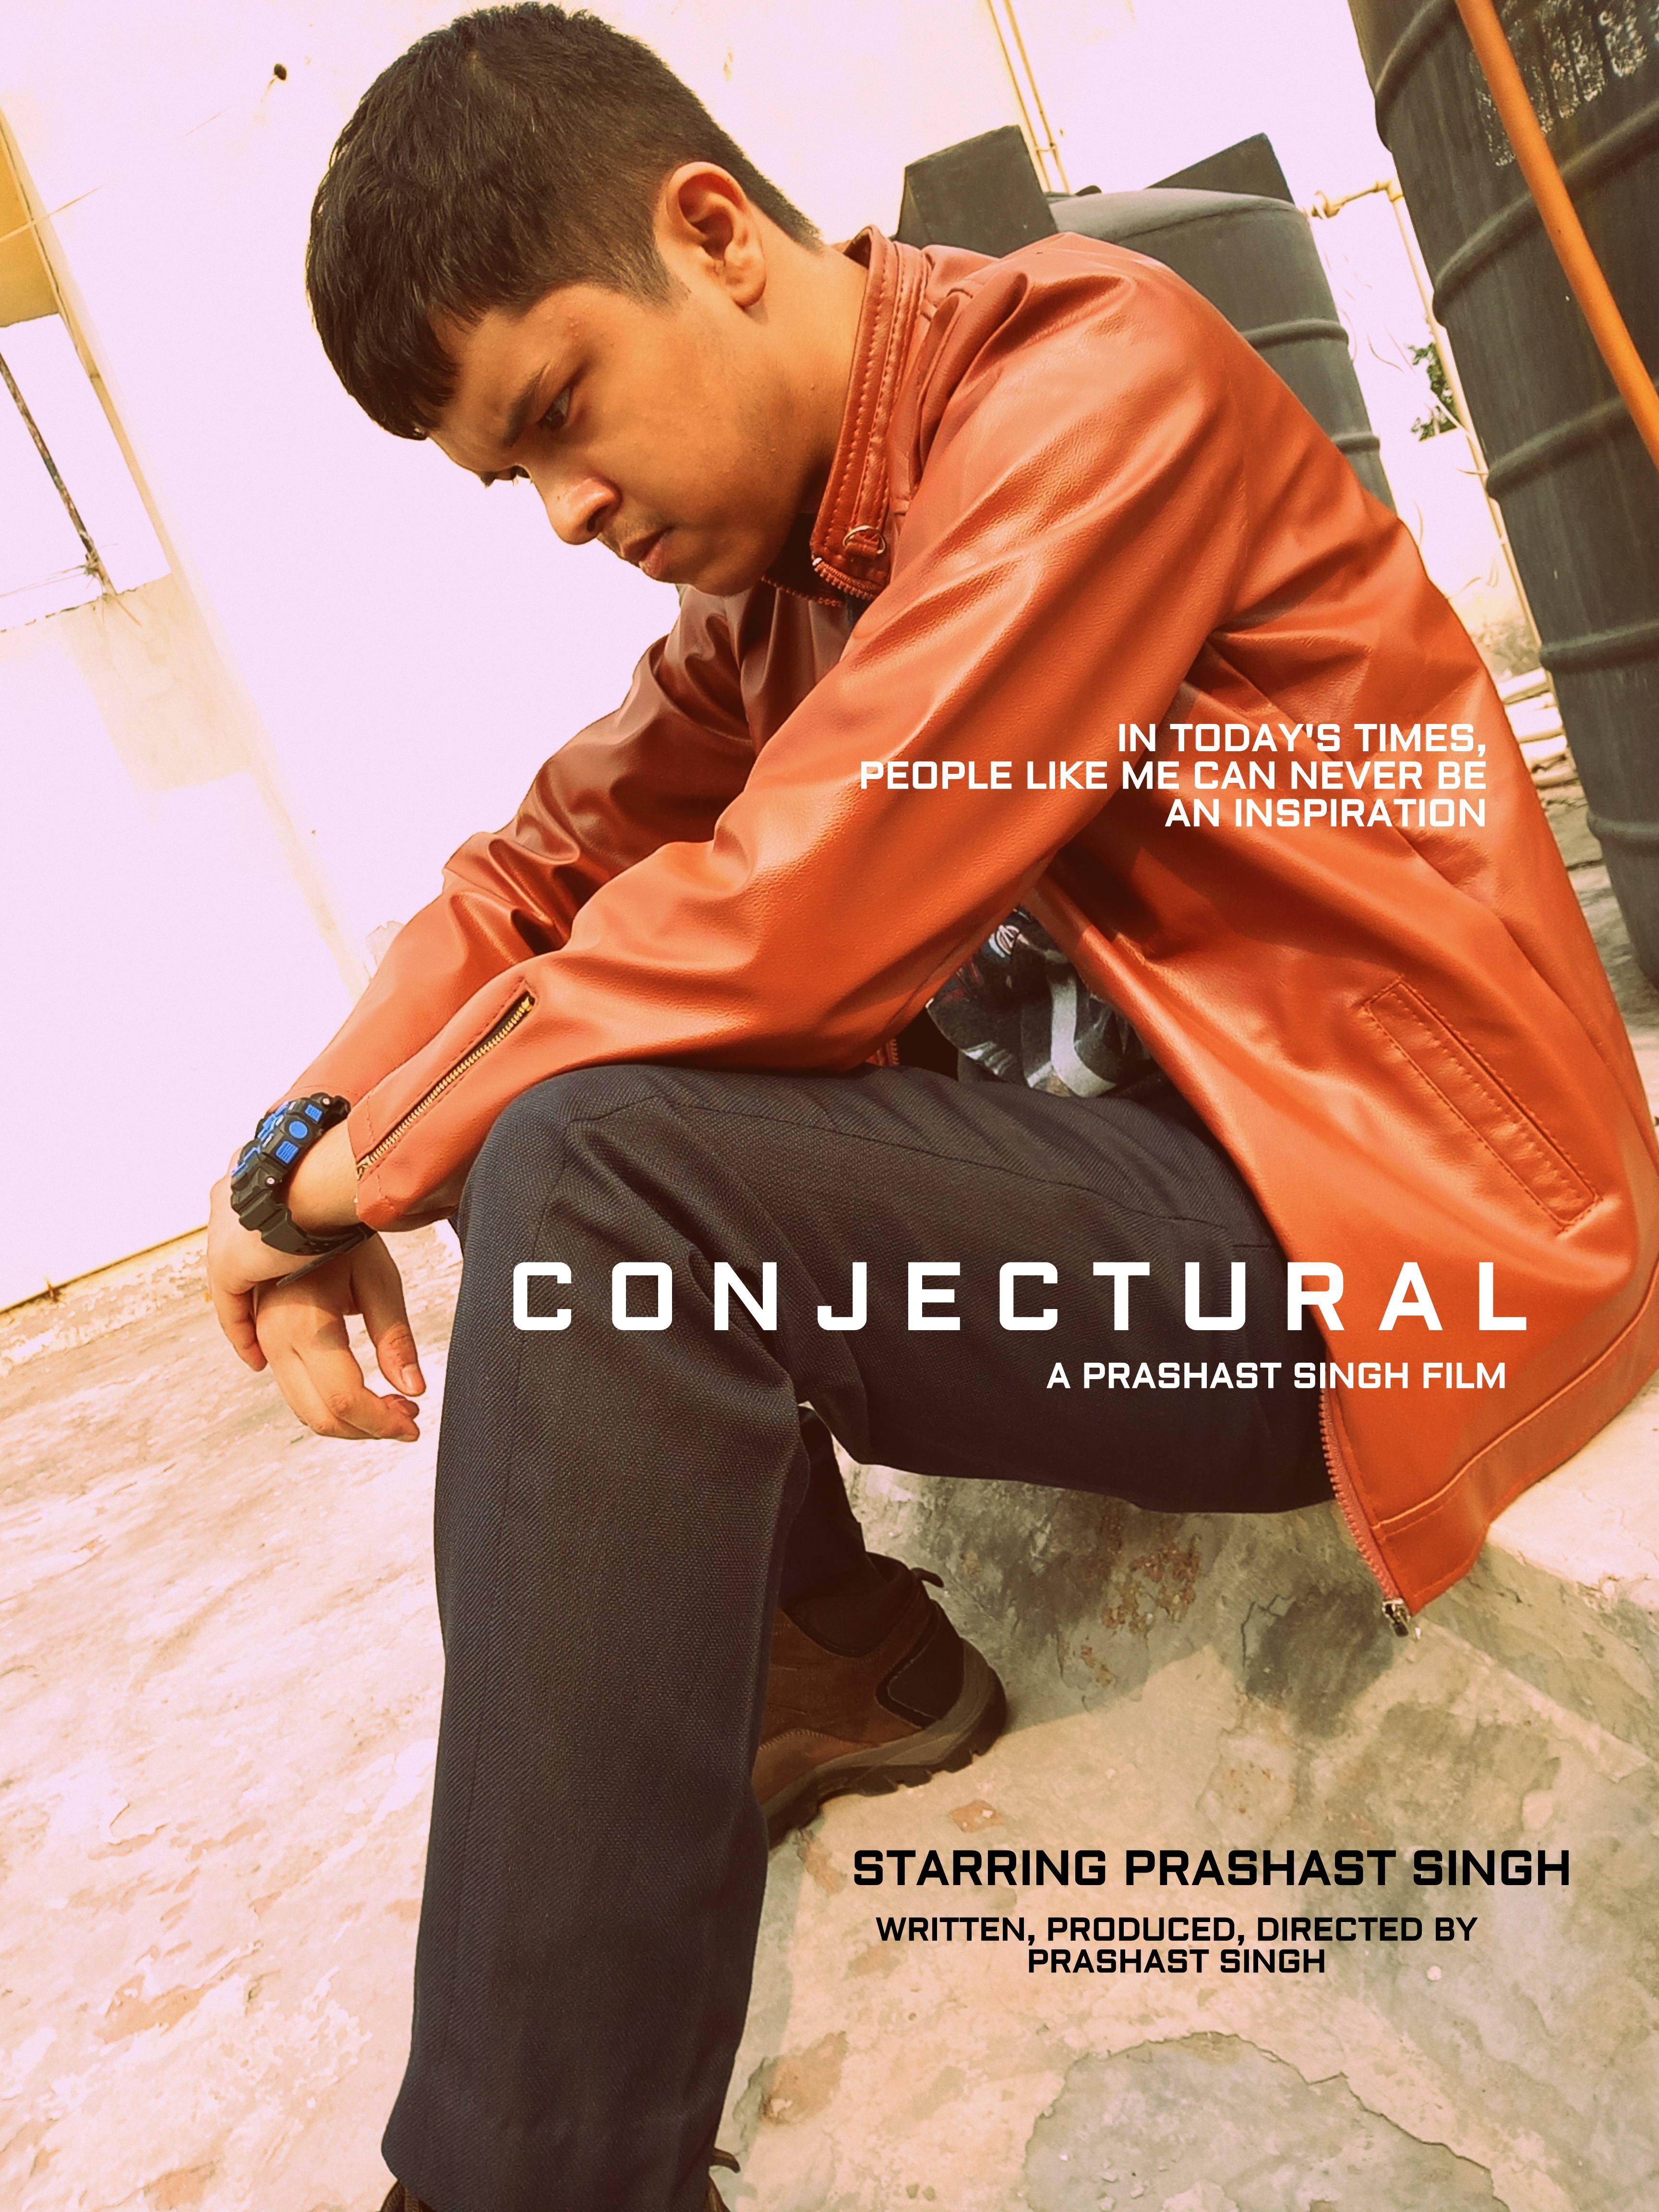 Conjectural